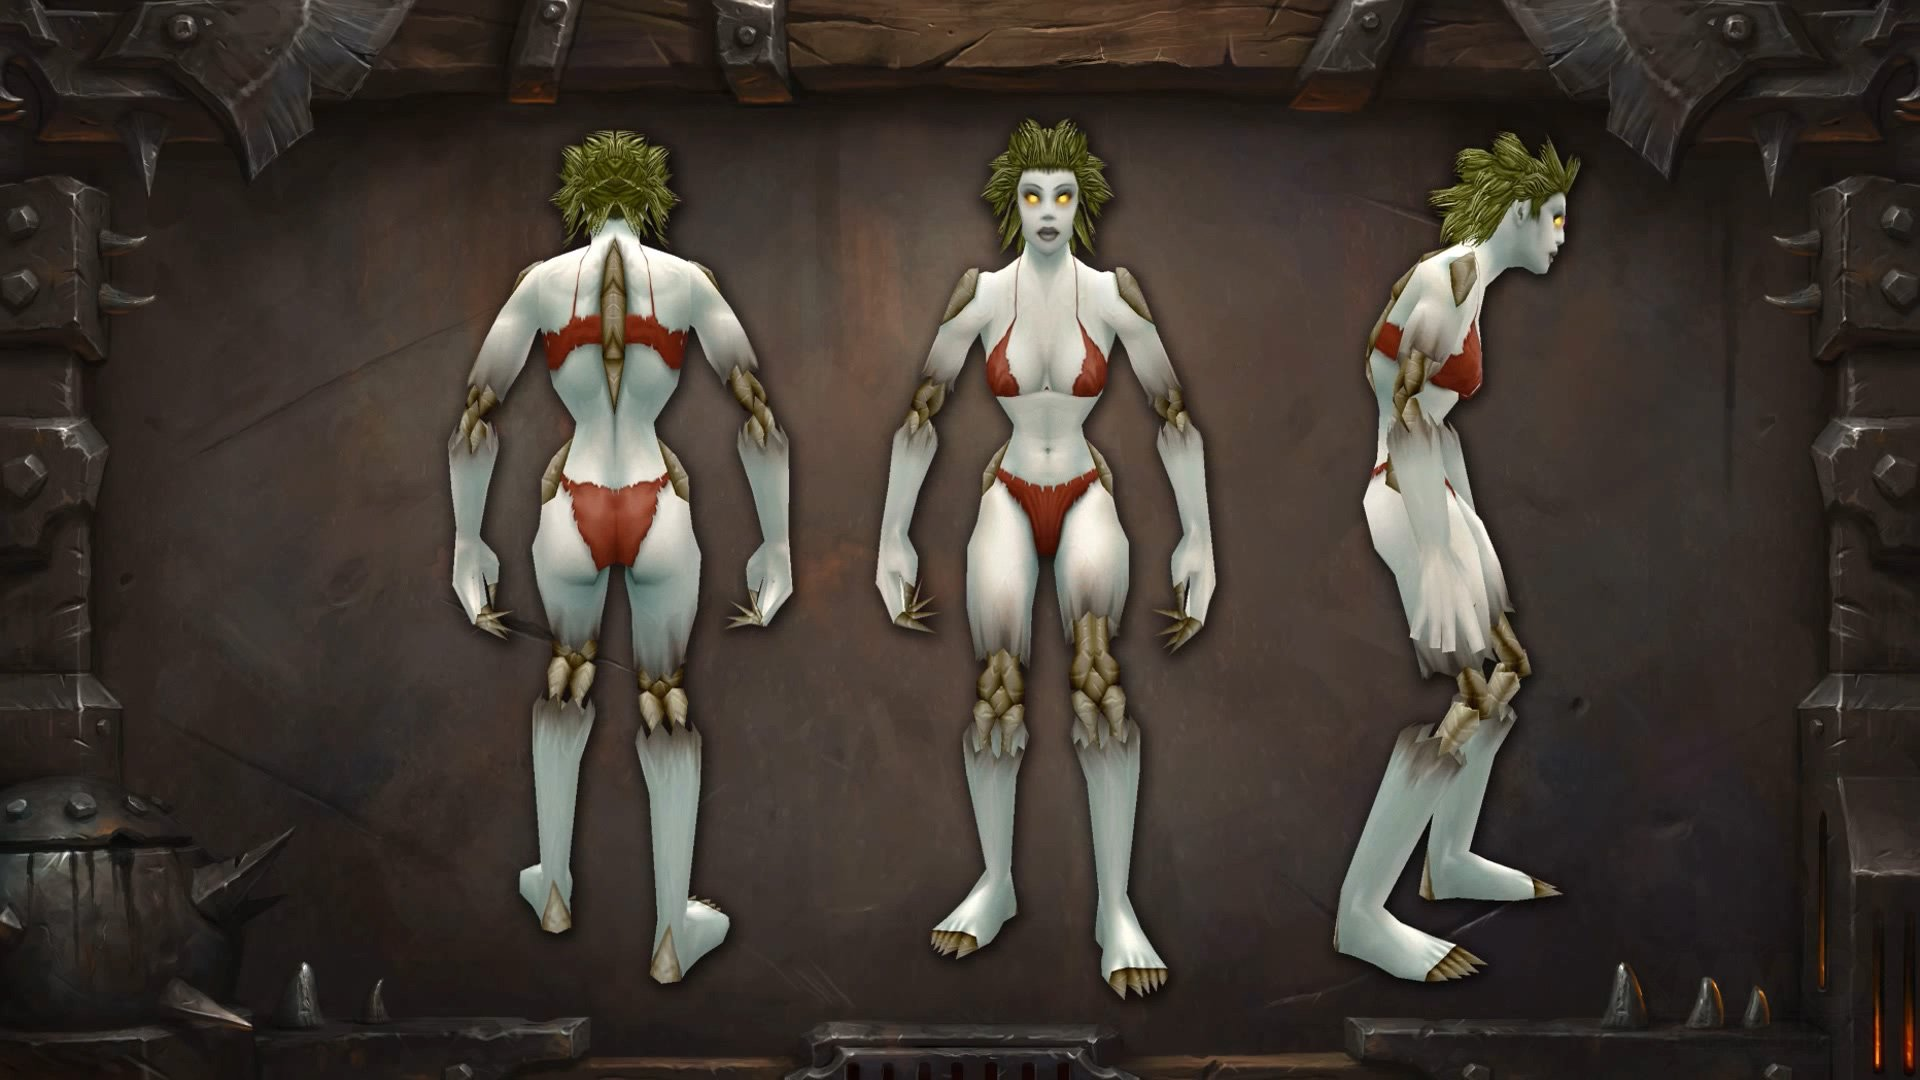 New wow skins for humans wow naked tube